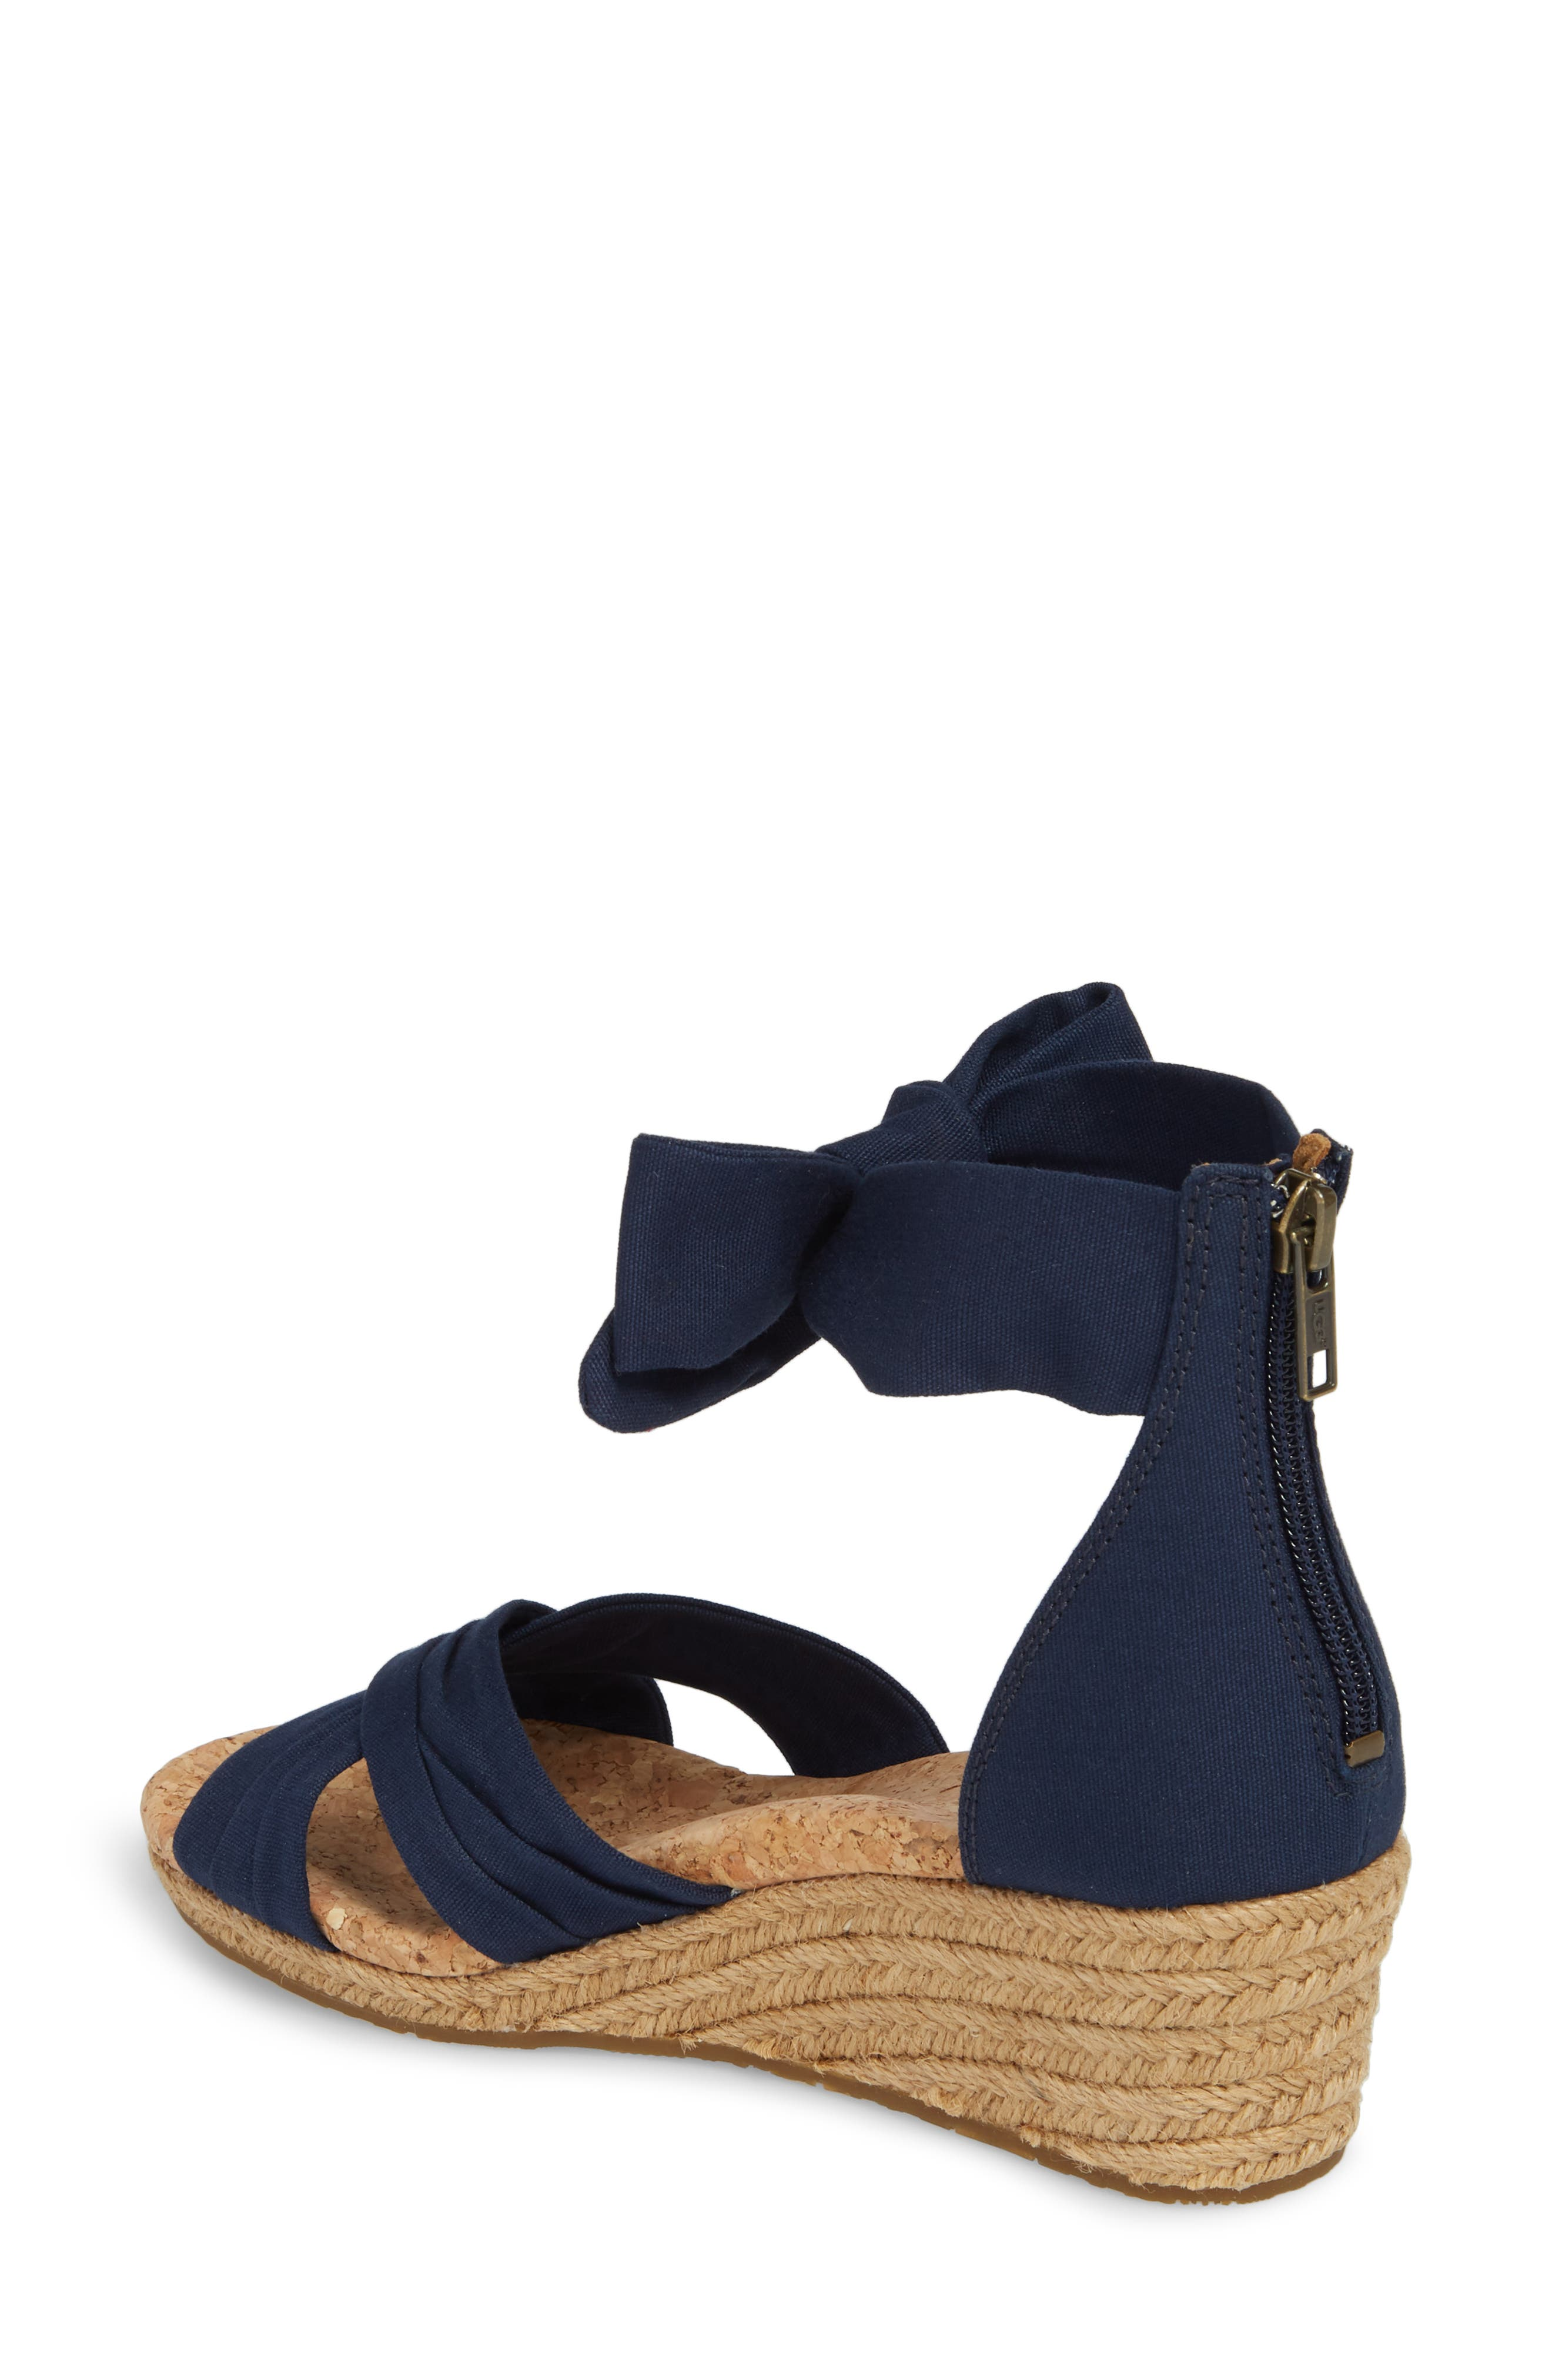 Traci Espadrille Wedge Sandal,                             Alternate thumbnail 2, color,                             Navy